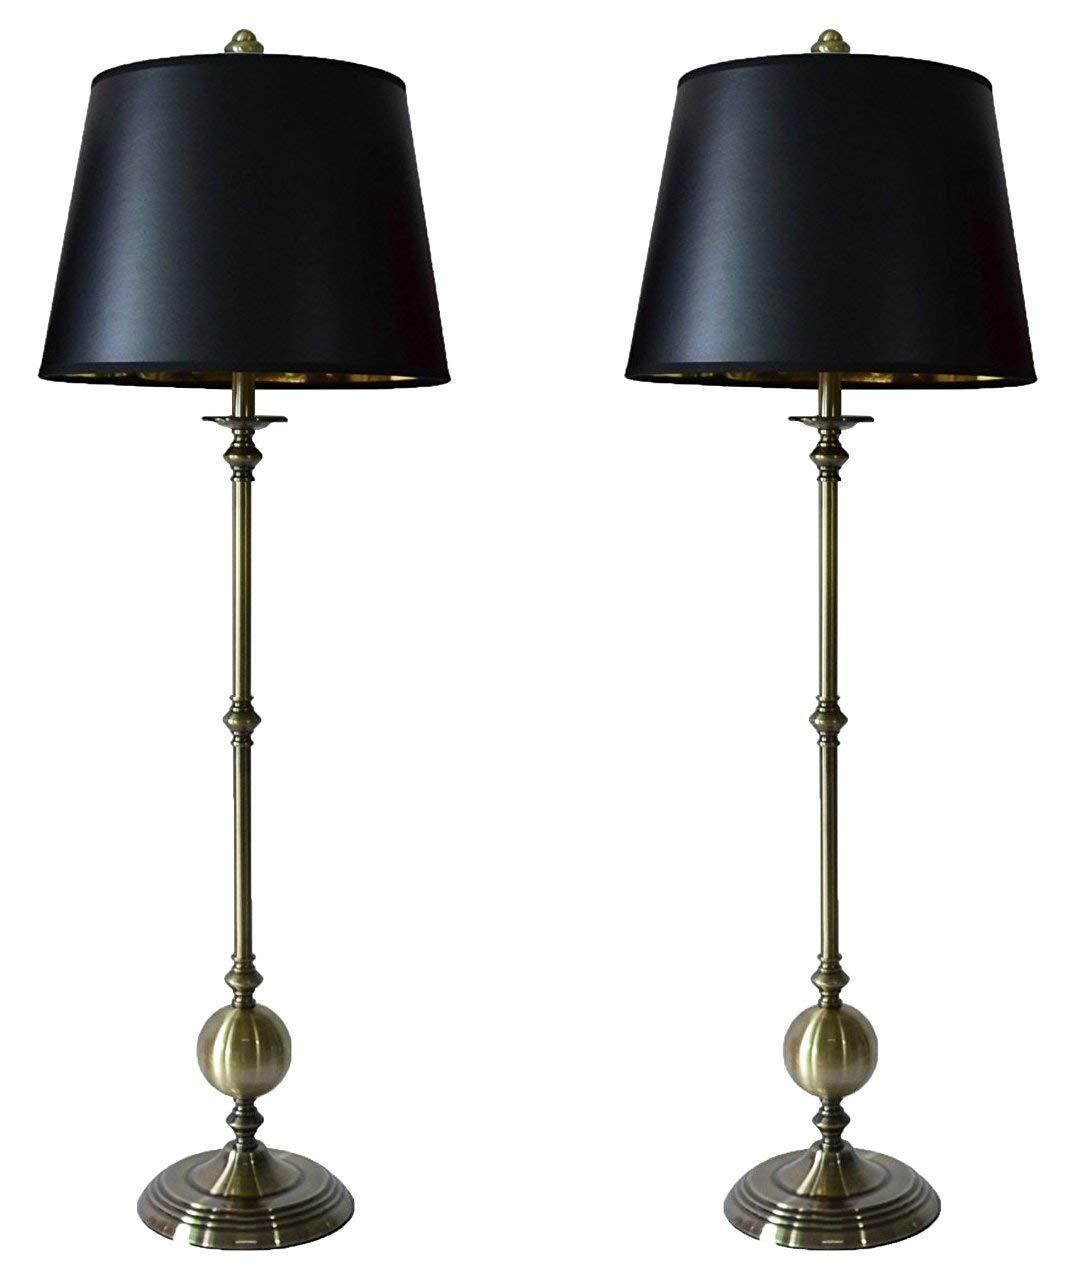 Set of 2 Bastille Buffet Lamps with Shades